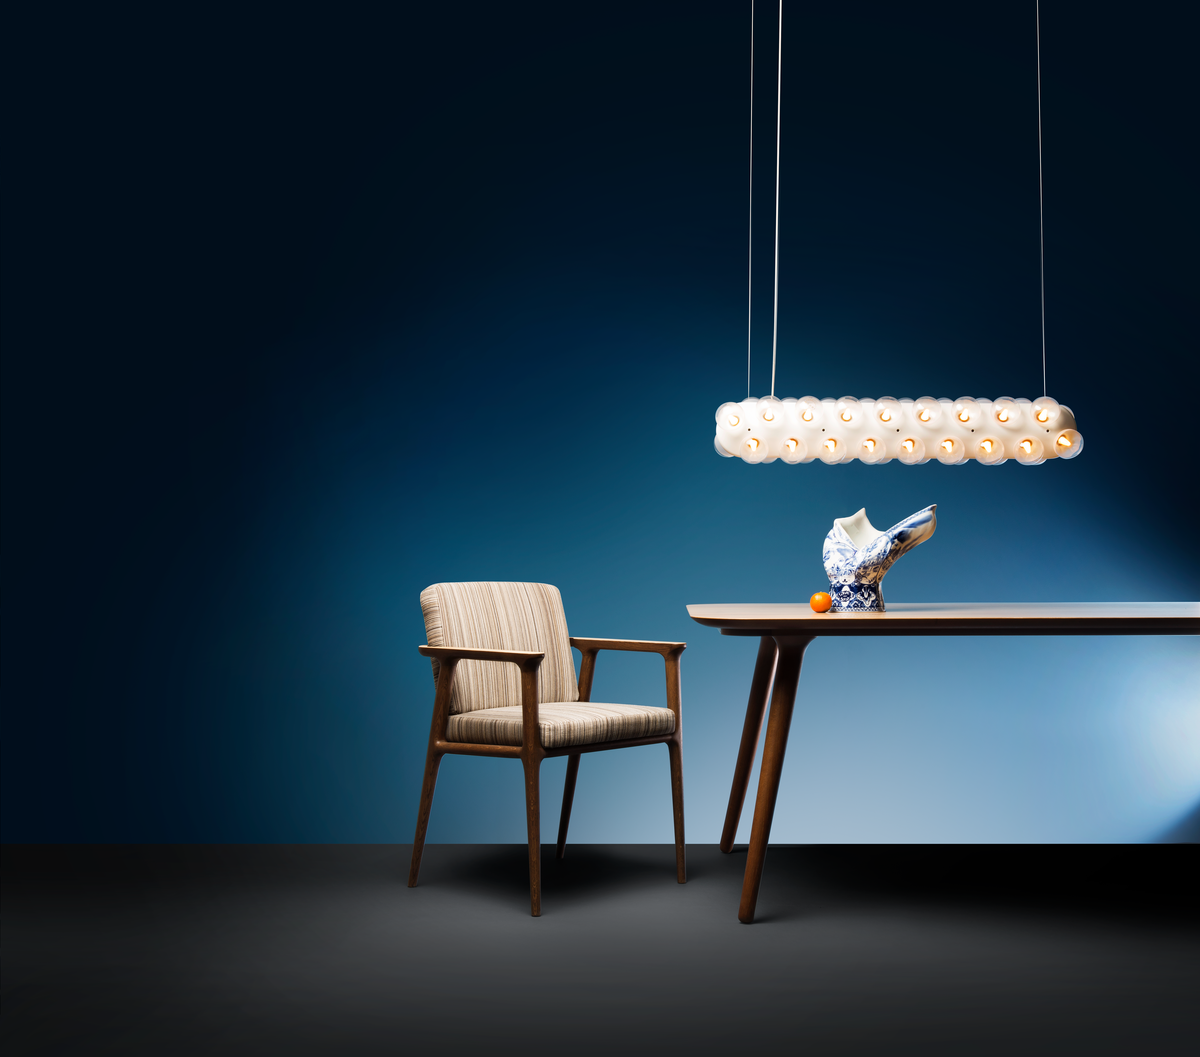 Poetic composition Zio Dining Chair, Zio Dining Table, Blow Away Vase and Prop Light suspension